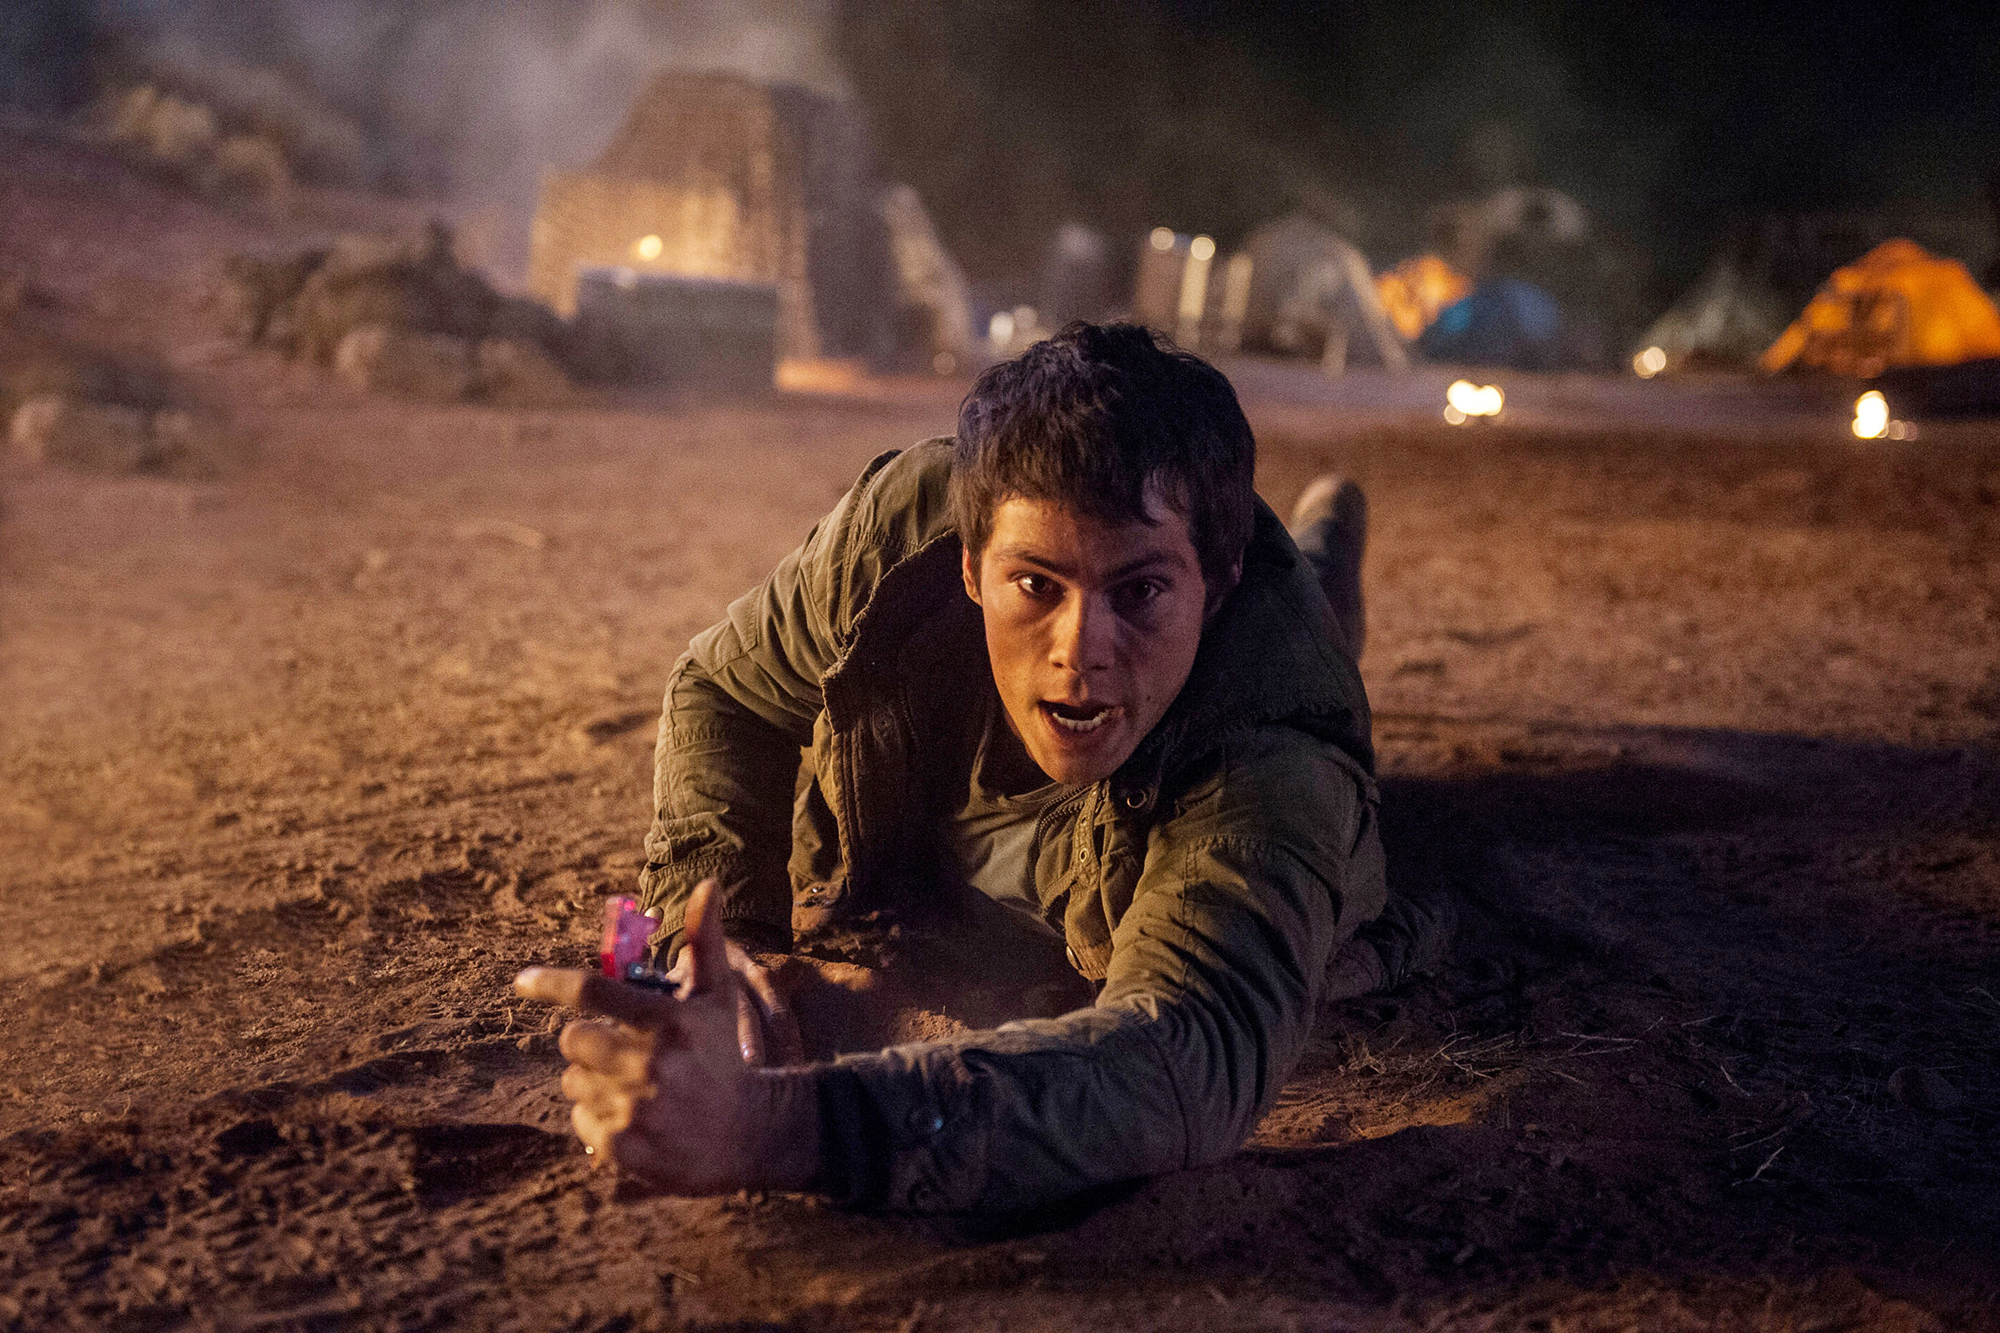 'Maze Runner' accident left me 'f–ked up'